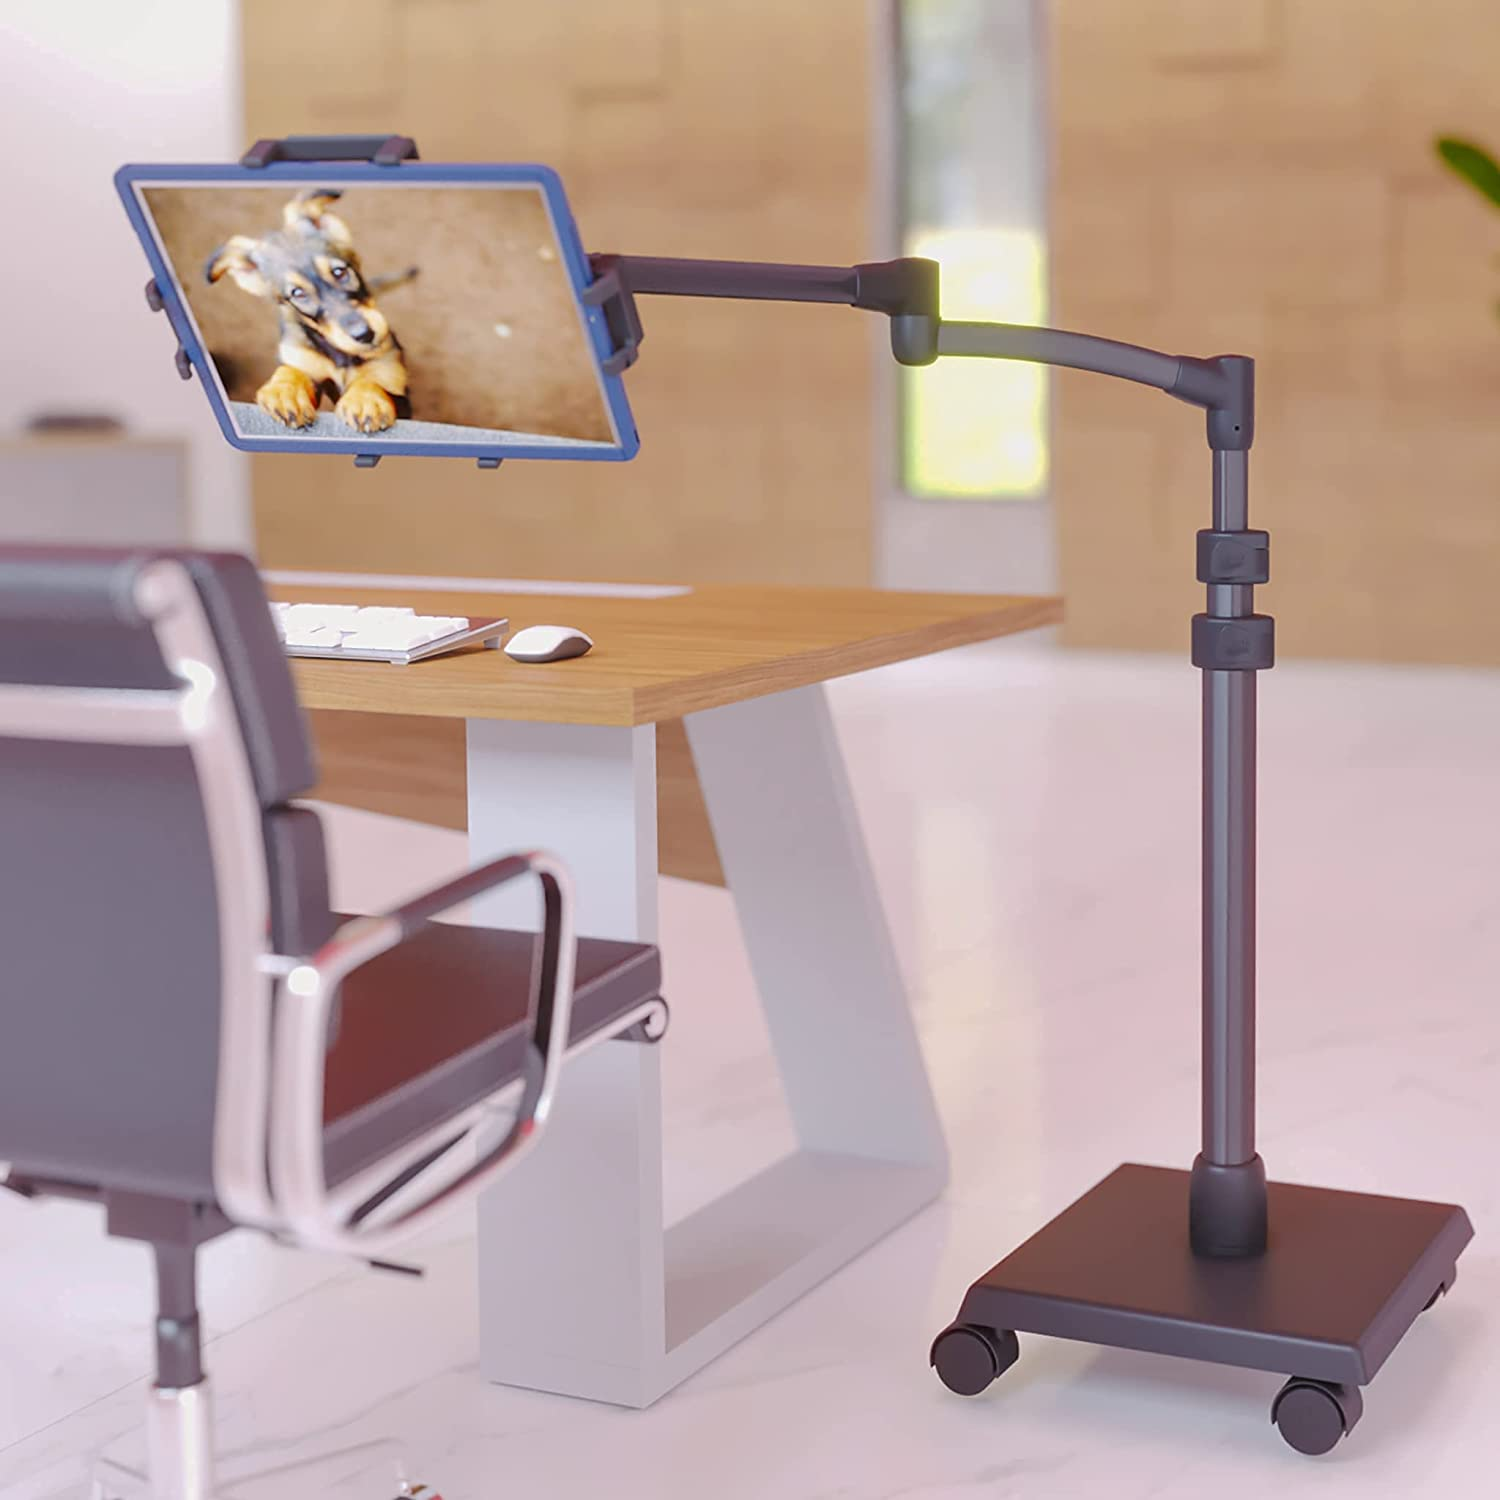 The iPad Stand: Elevate Your Device for Ease of Use